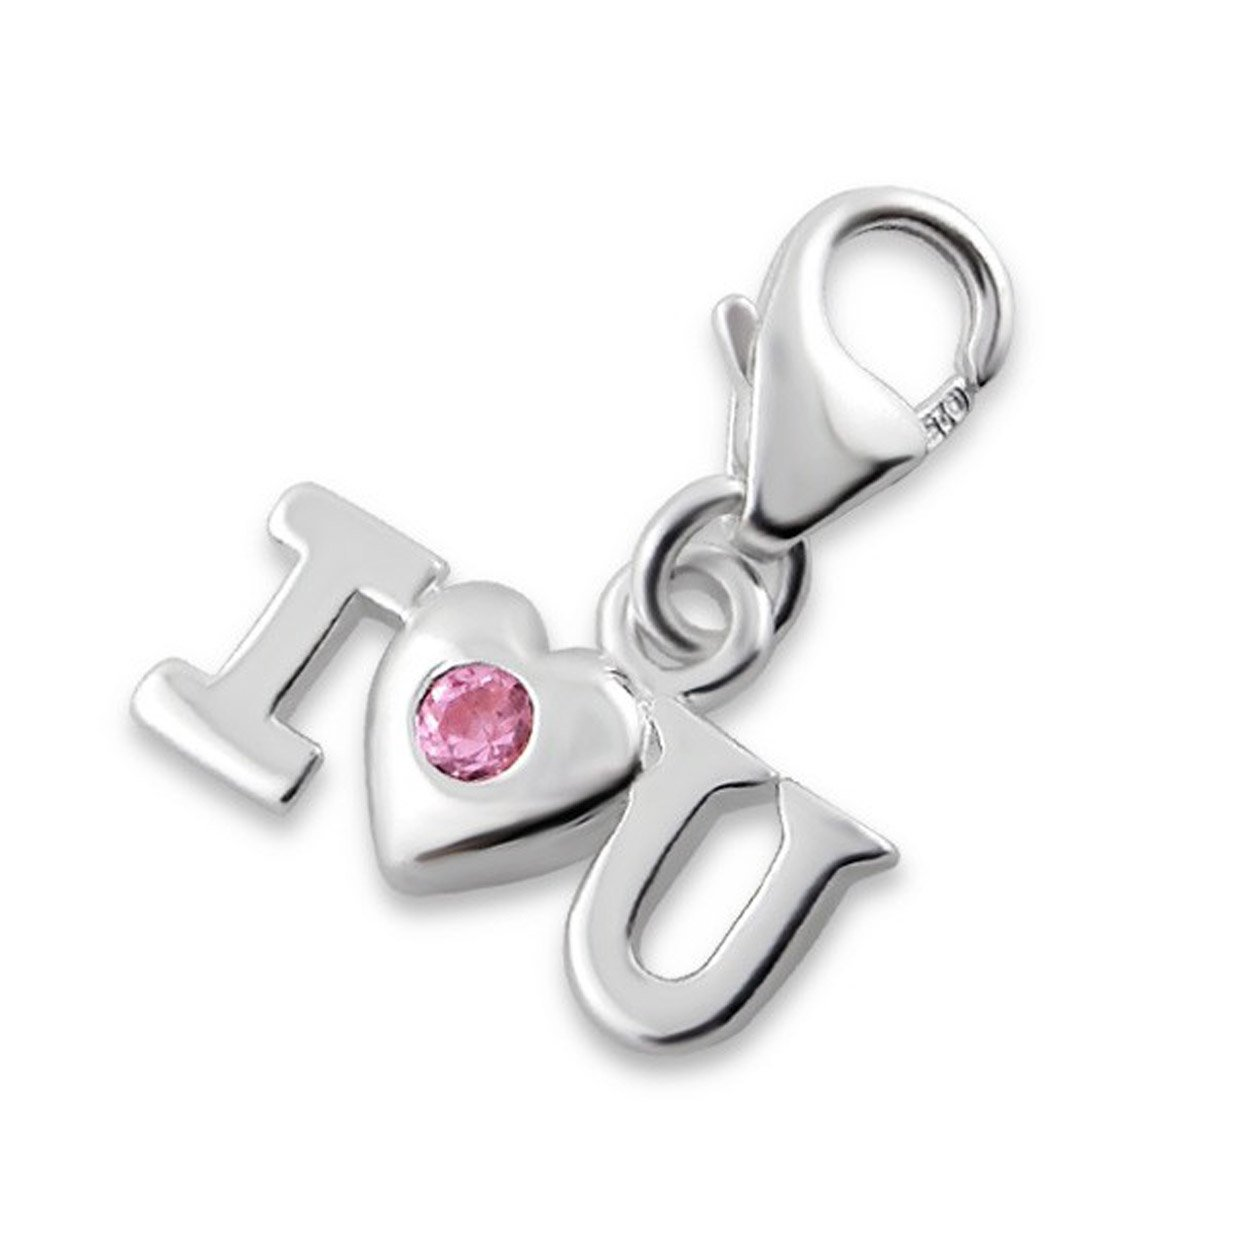 Small I Love You Charm Lobster Clasp Sterling Silver 925 with Pink CZ (E12402)